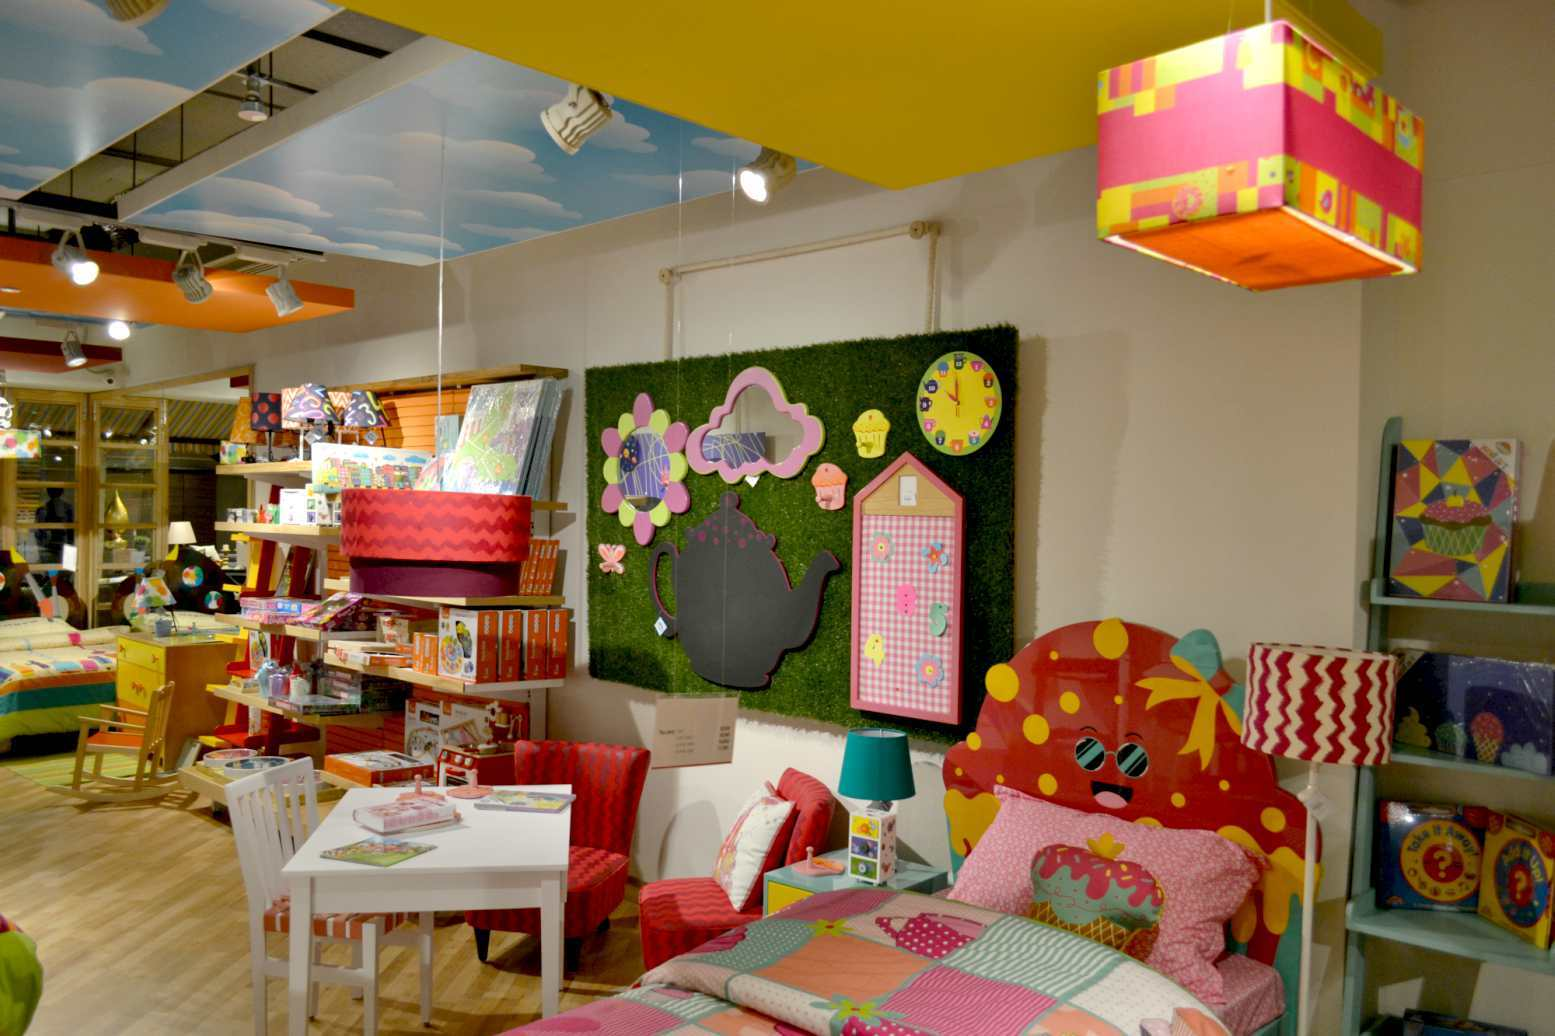 Awesome How A Visit To Little Habitt Revived Childhood Memories Of Beatyapartments Chair Design Images Beatyapartmentscom